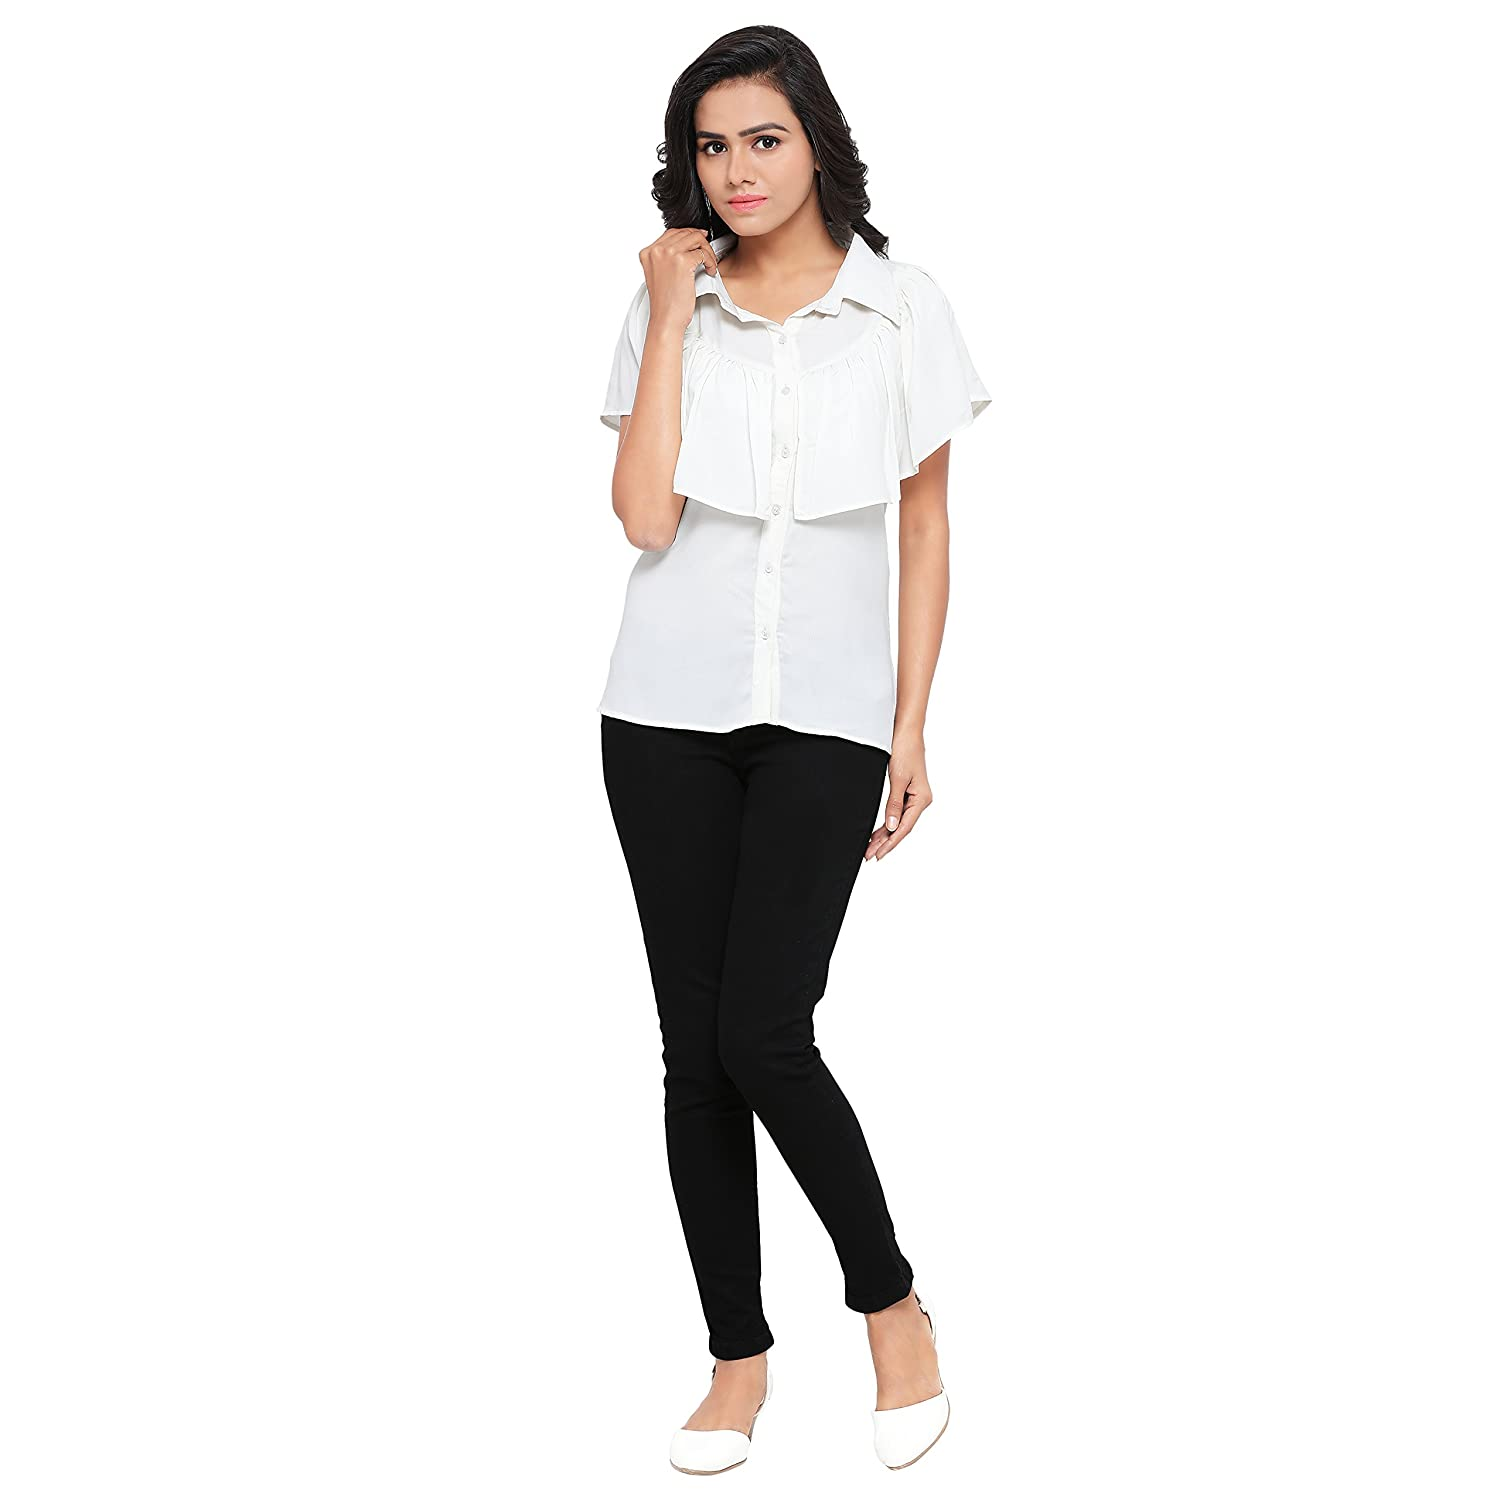 ee6f9ec149c2 Serein Women's White Crepe top Crepe Shirt with Neck Frills: Amazon.in:  Clothing & Accessories